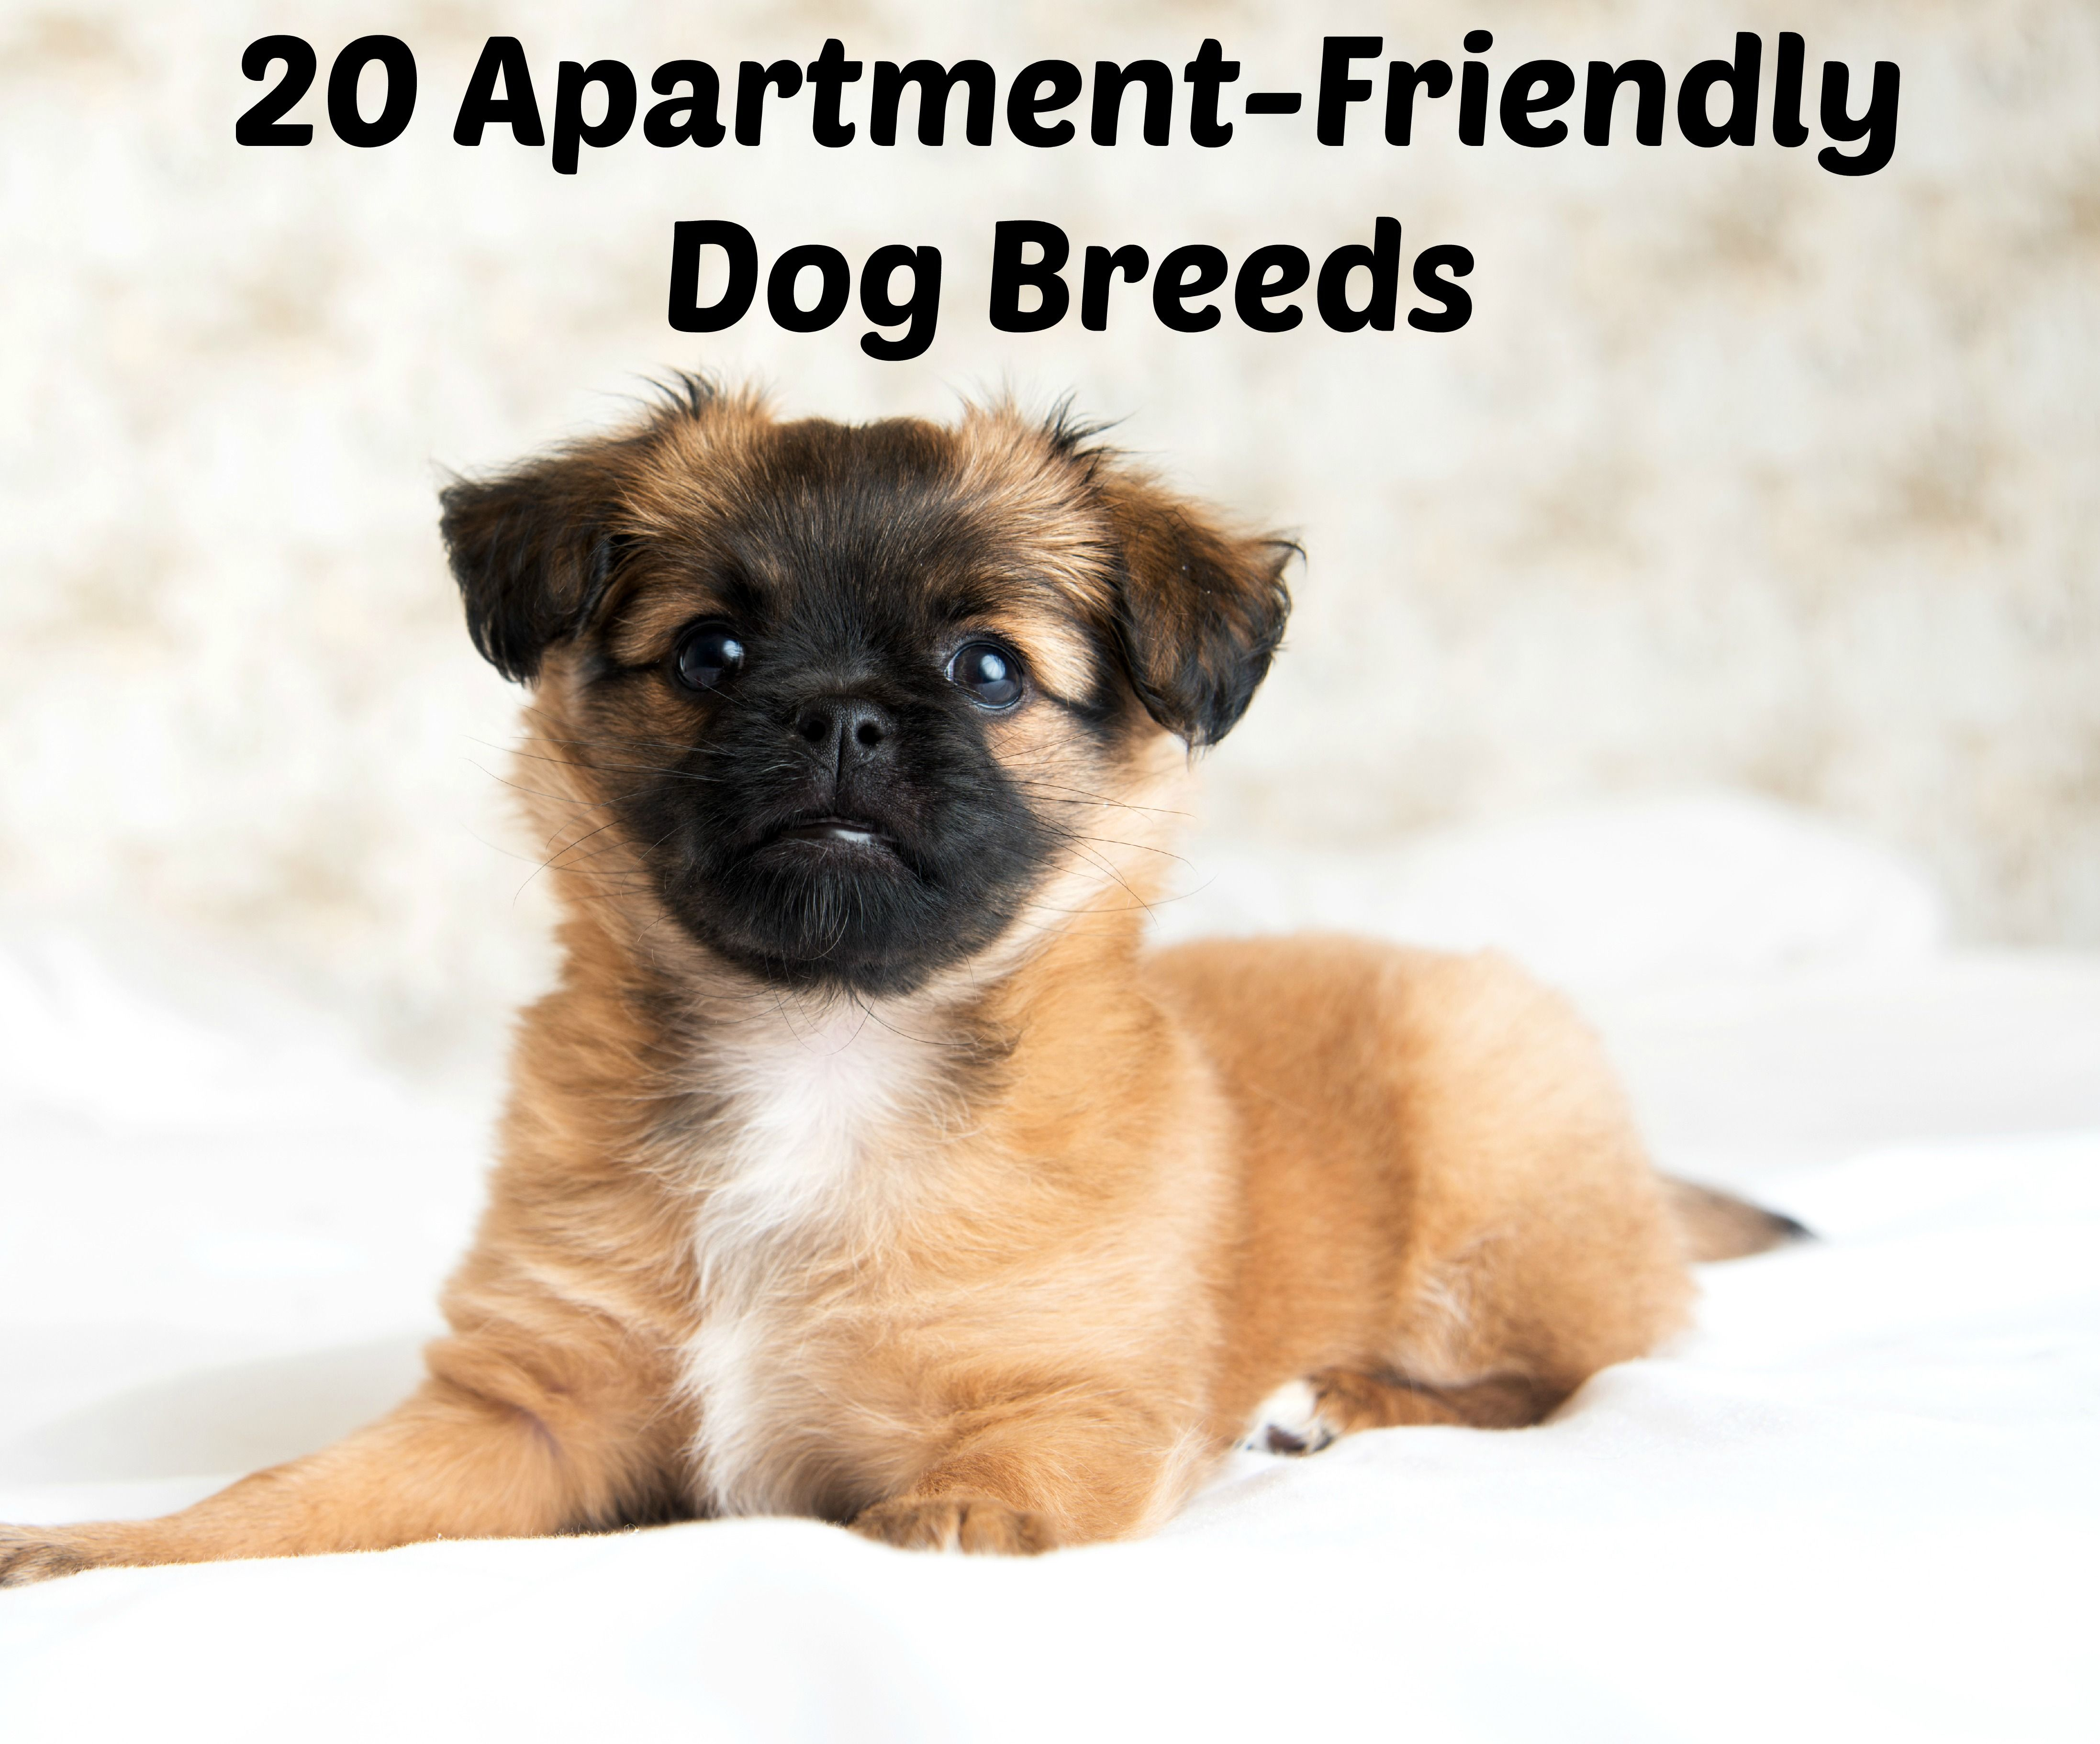 condo-loving canines: 20 of the best dog breeds for apartments